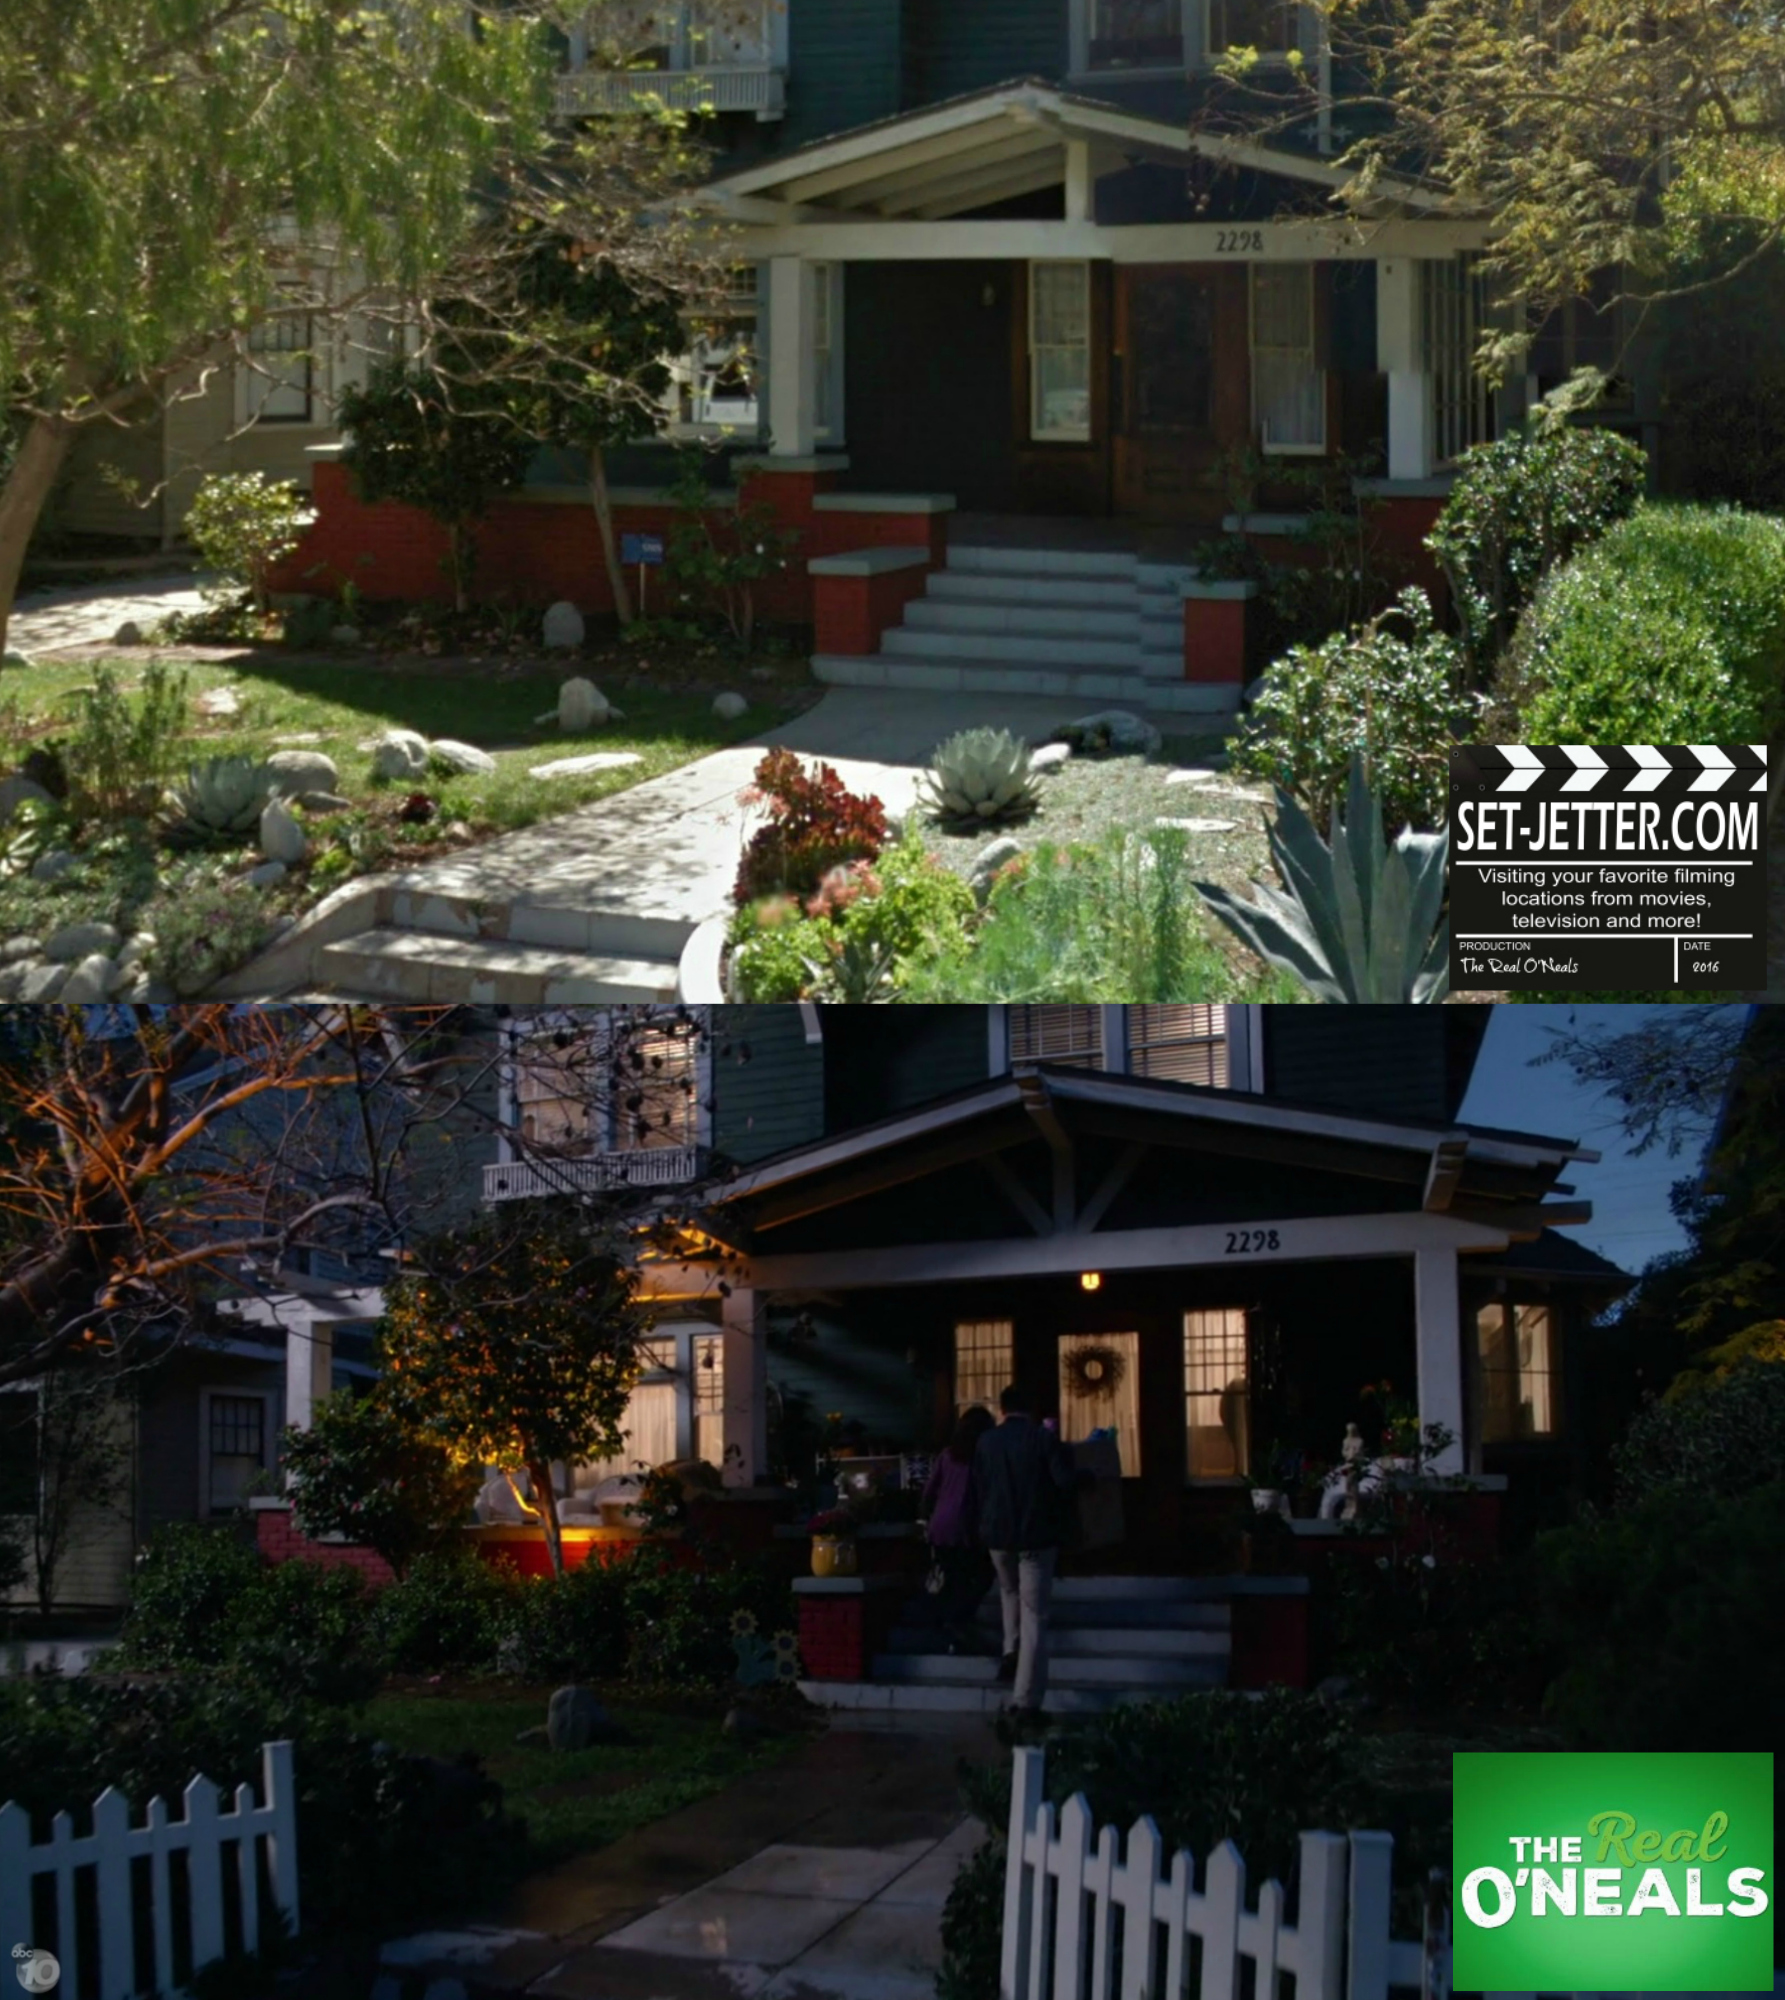 The Real Oneals house 01.jpg